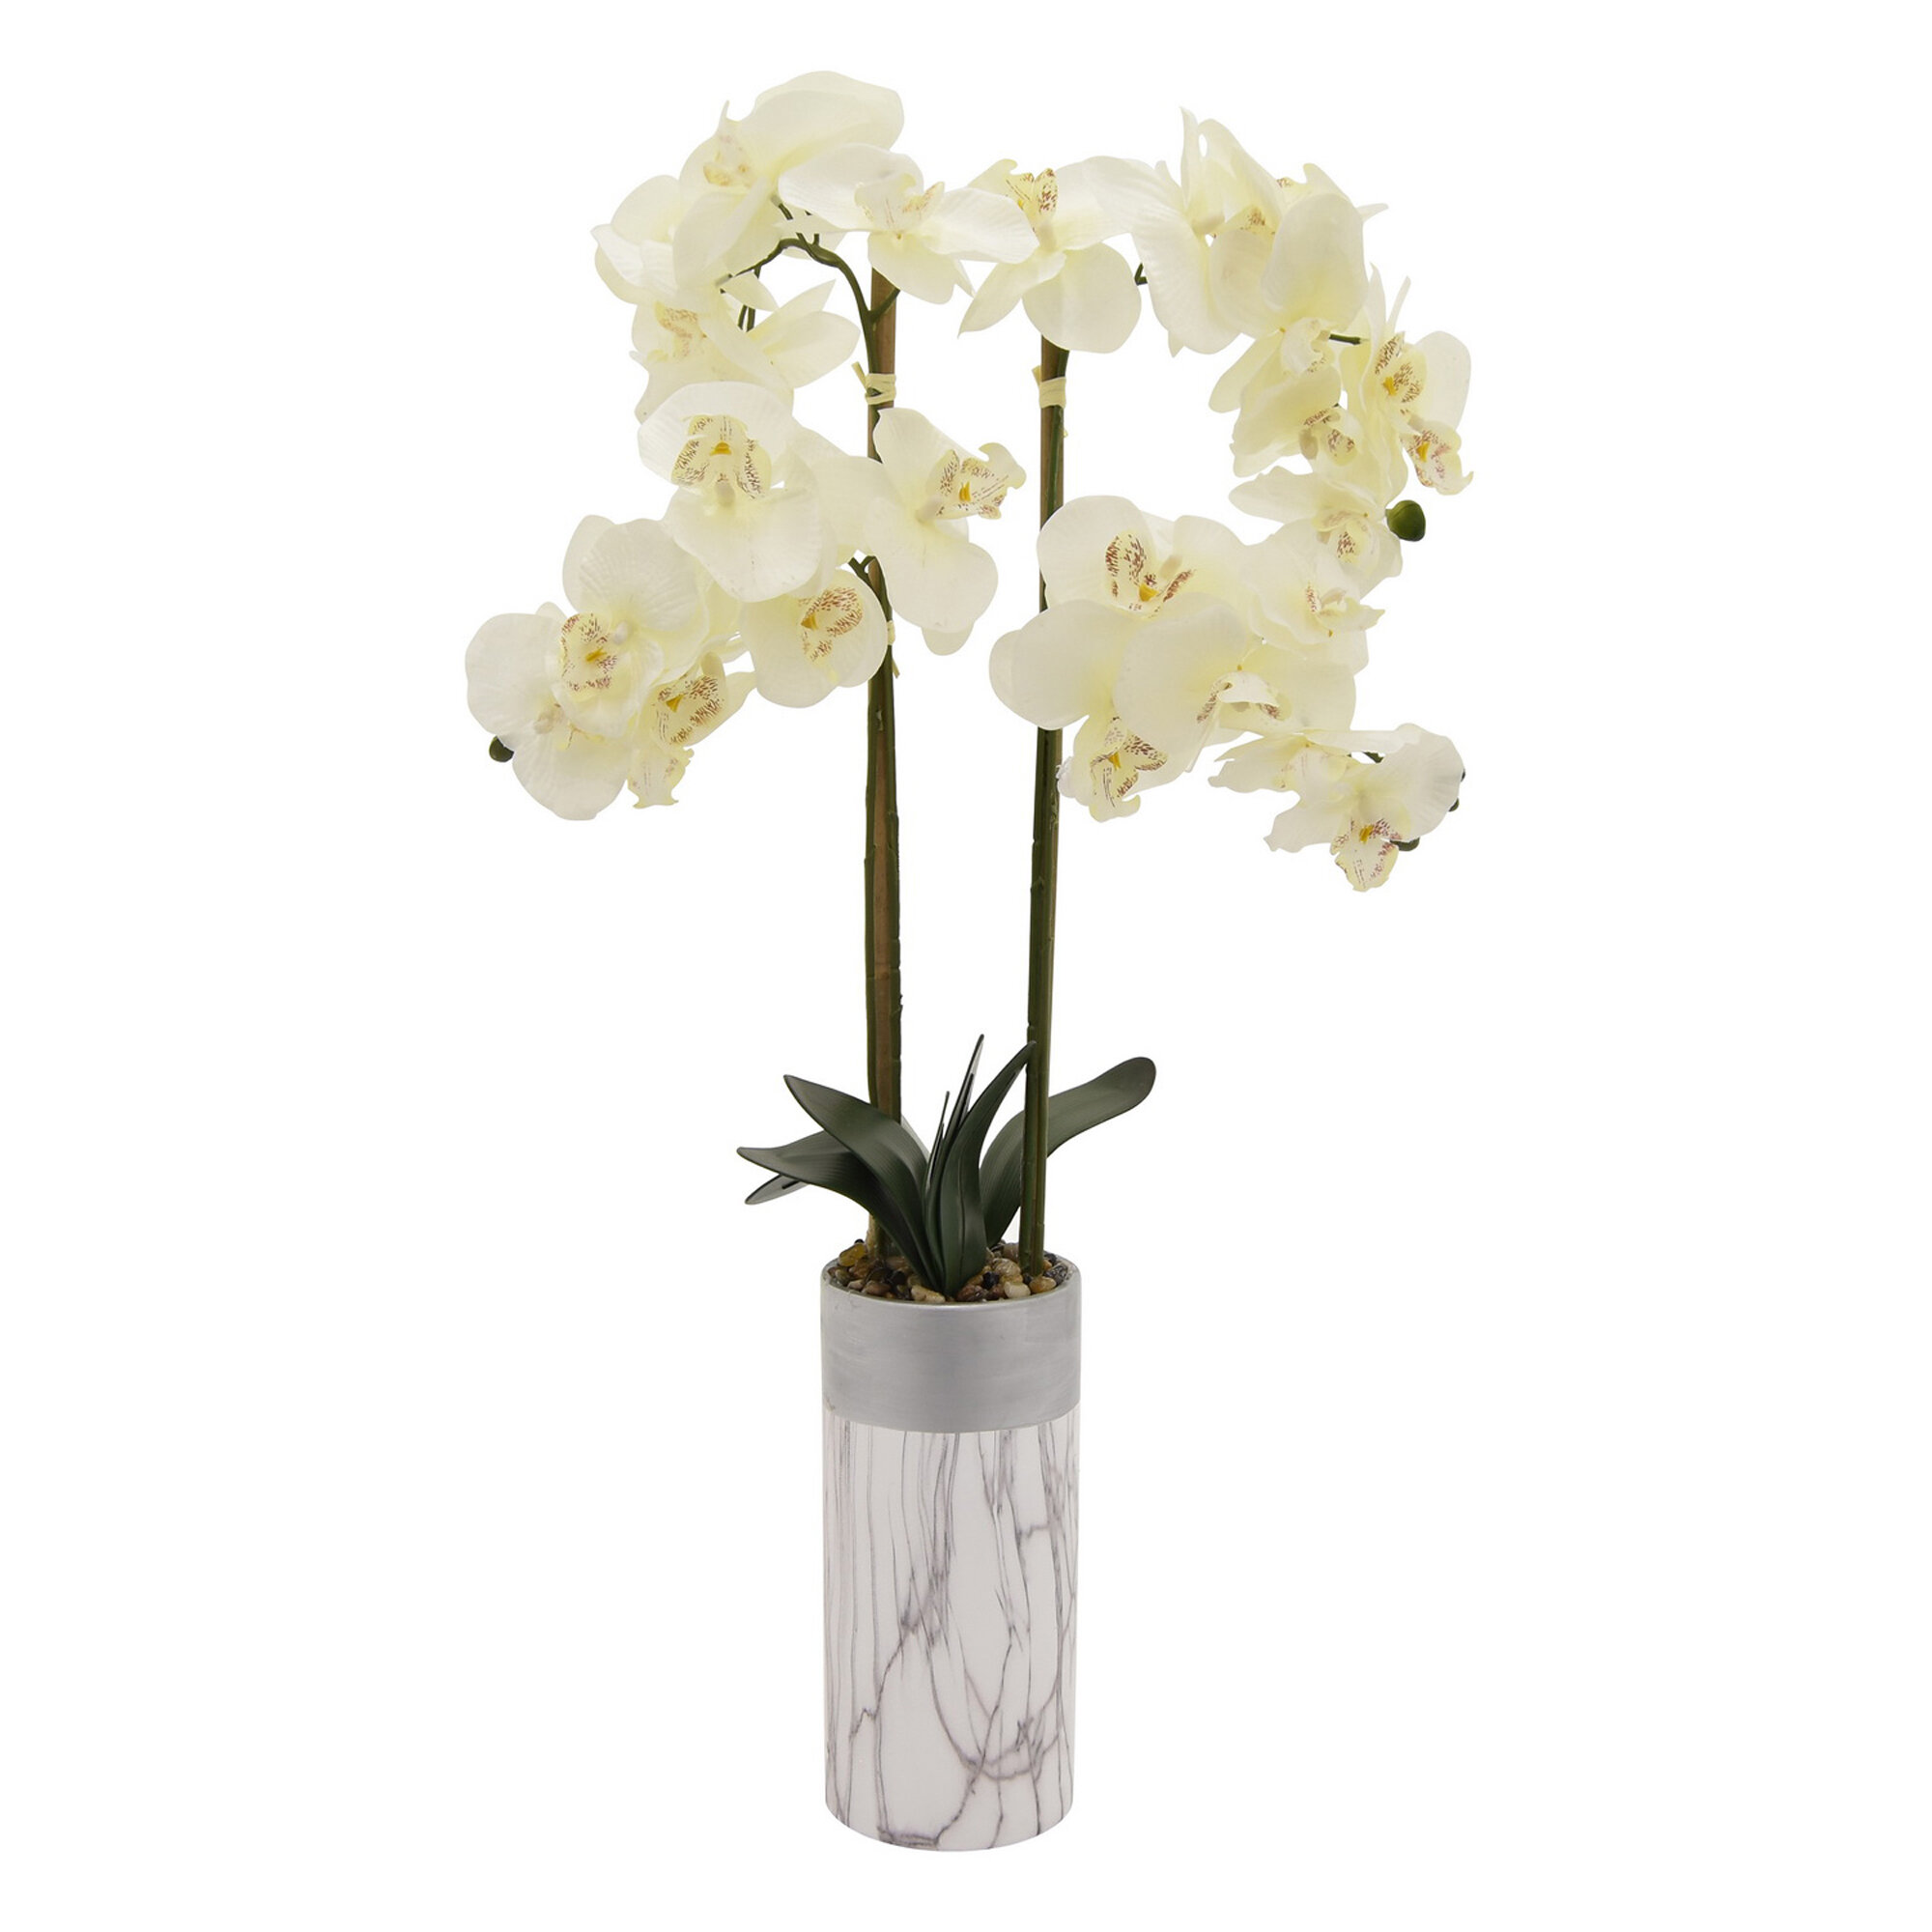 Mercer41 Faux Orchid Flowering Plant in Pot | Wayfair on grape plant name, pink hydrangea plant name, christmas red plant name, heroin plant name,